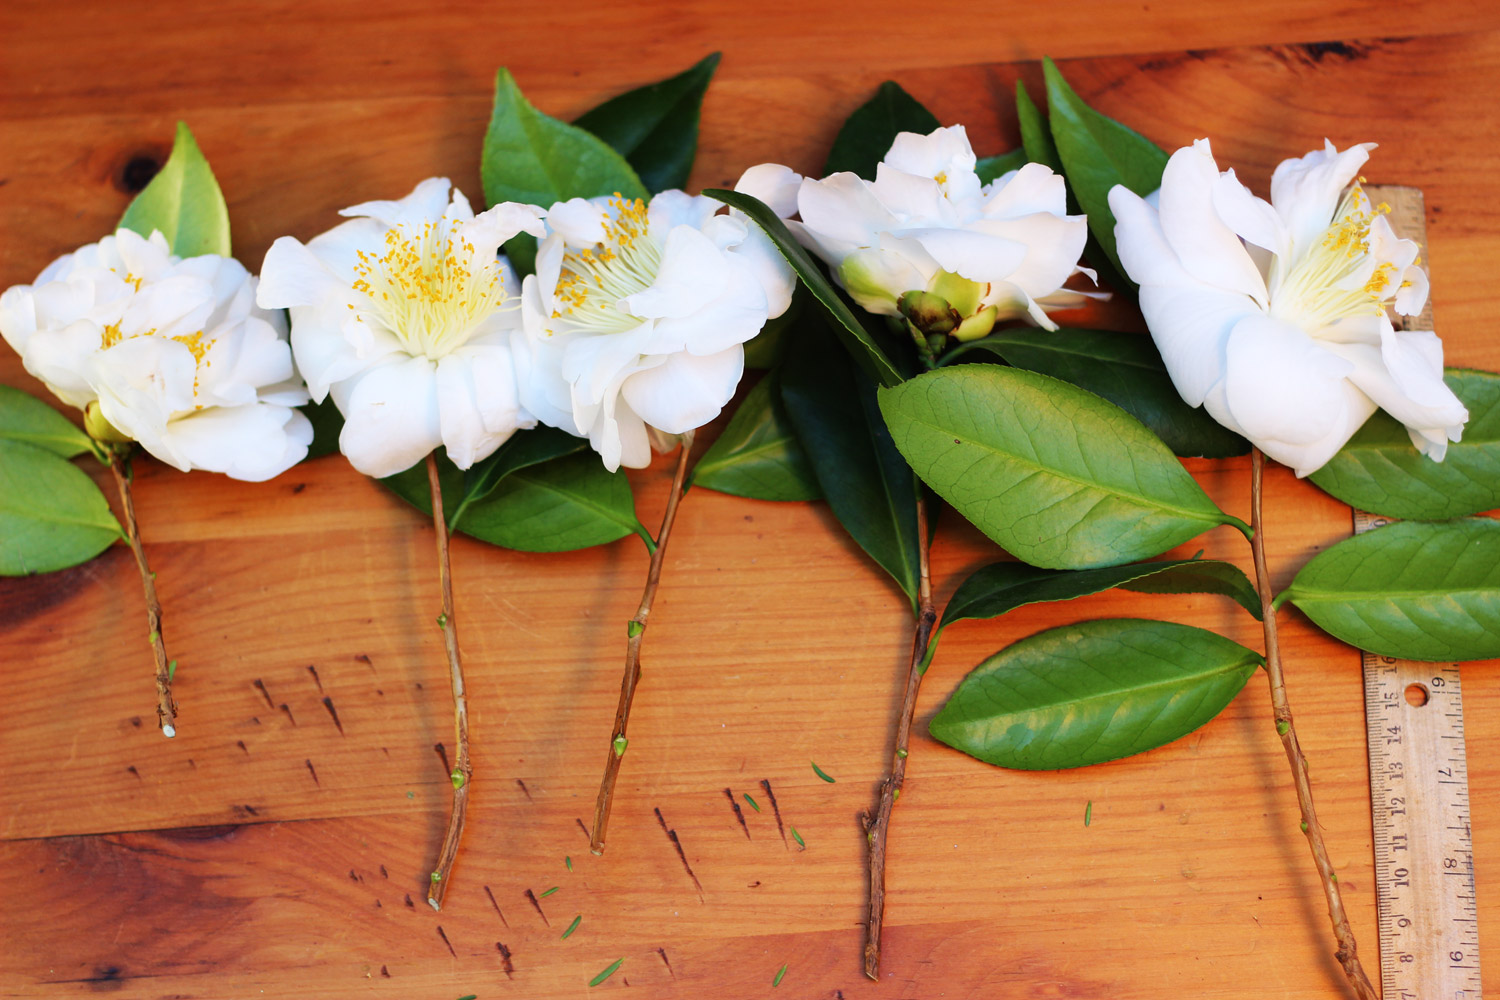 Cut 5 - 6 camellias. Cut stems as long as possible, from 6.5 - 11 inches.